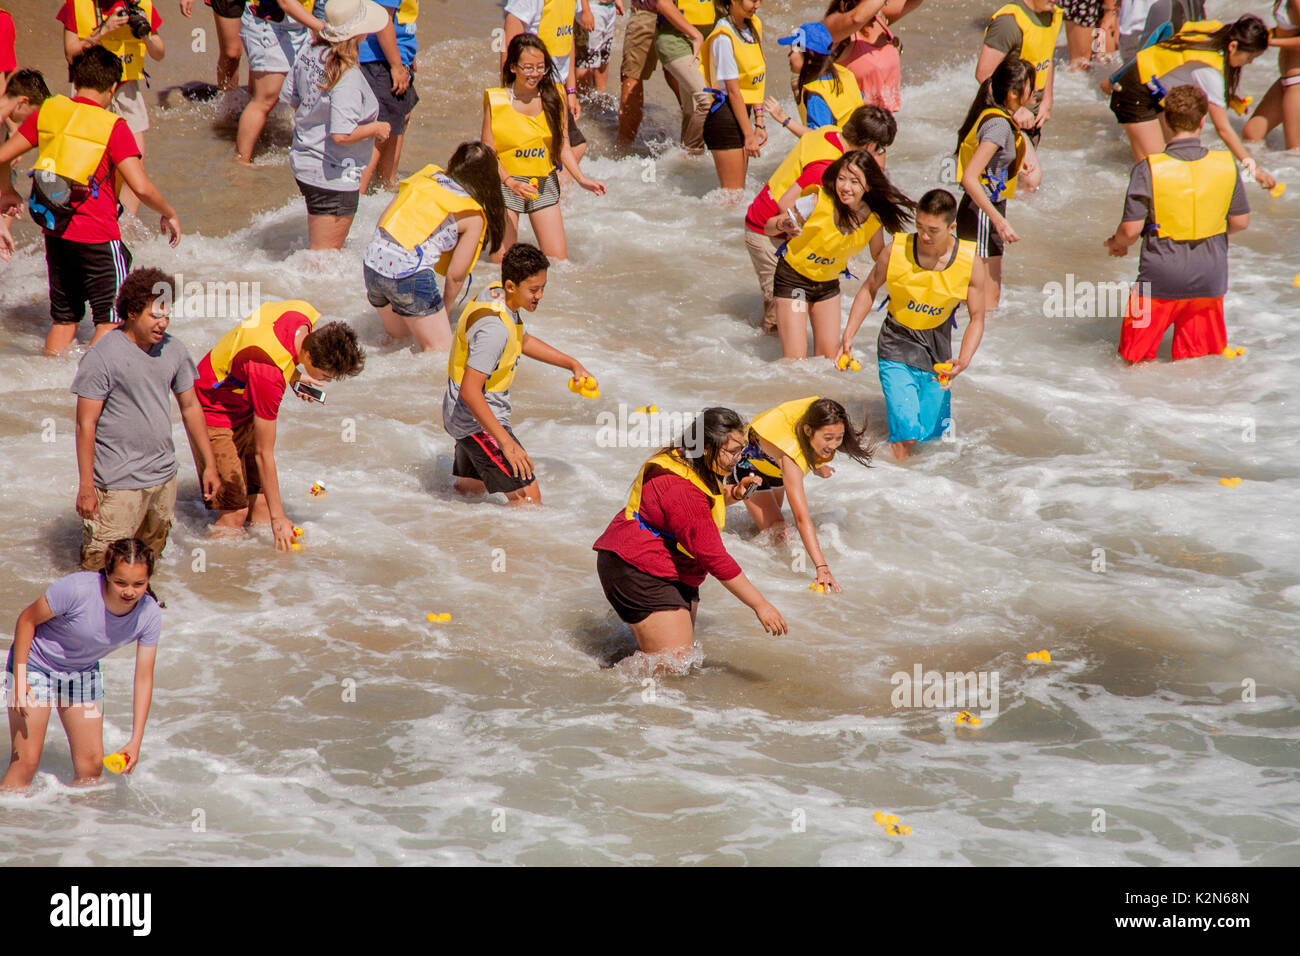 Volunteers in yellow jackets collect plastic ducks as they drift ashore in surf from a pier in Huntington Beach, Stock Photo